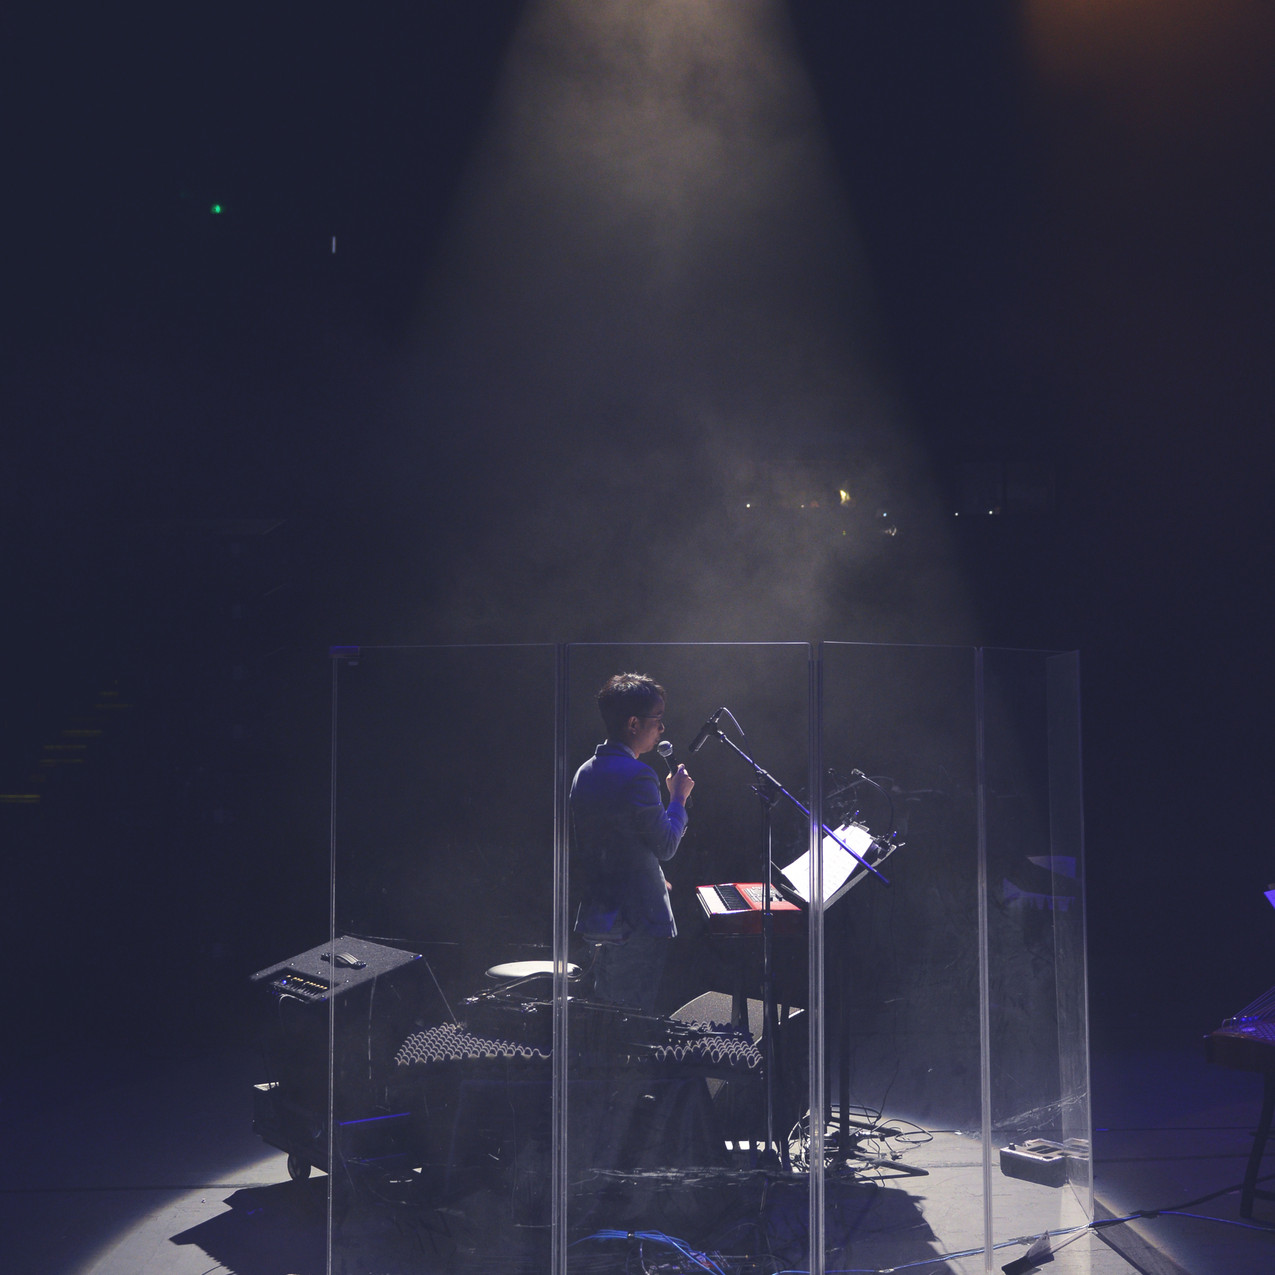 CY_in performance